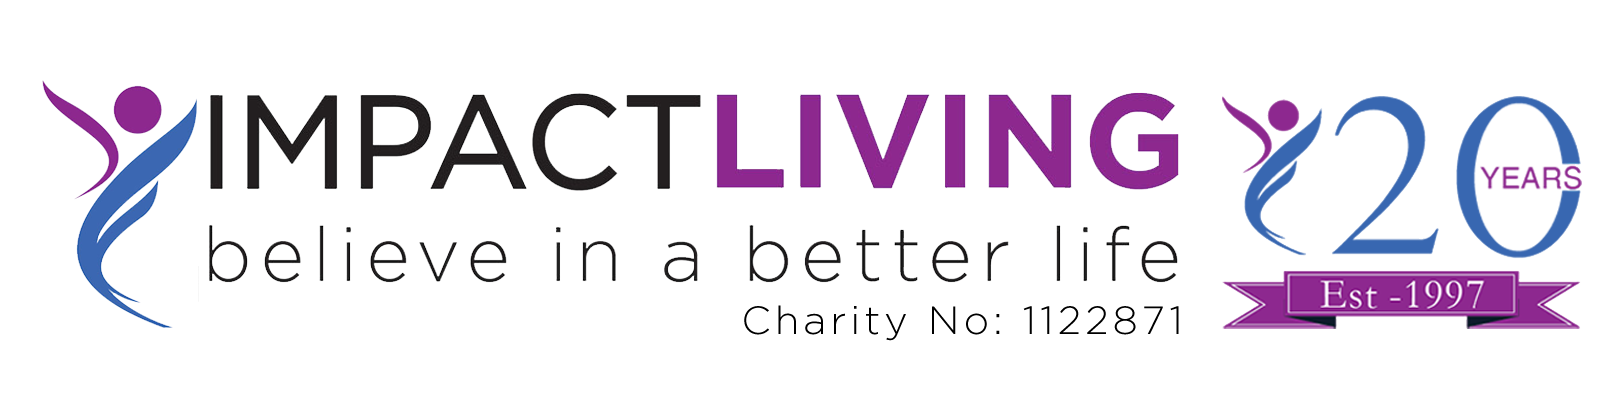 Impact Living - Believe in a better life Logo